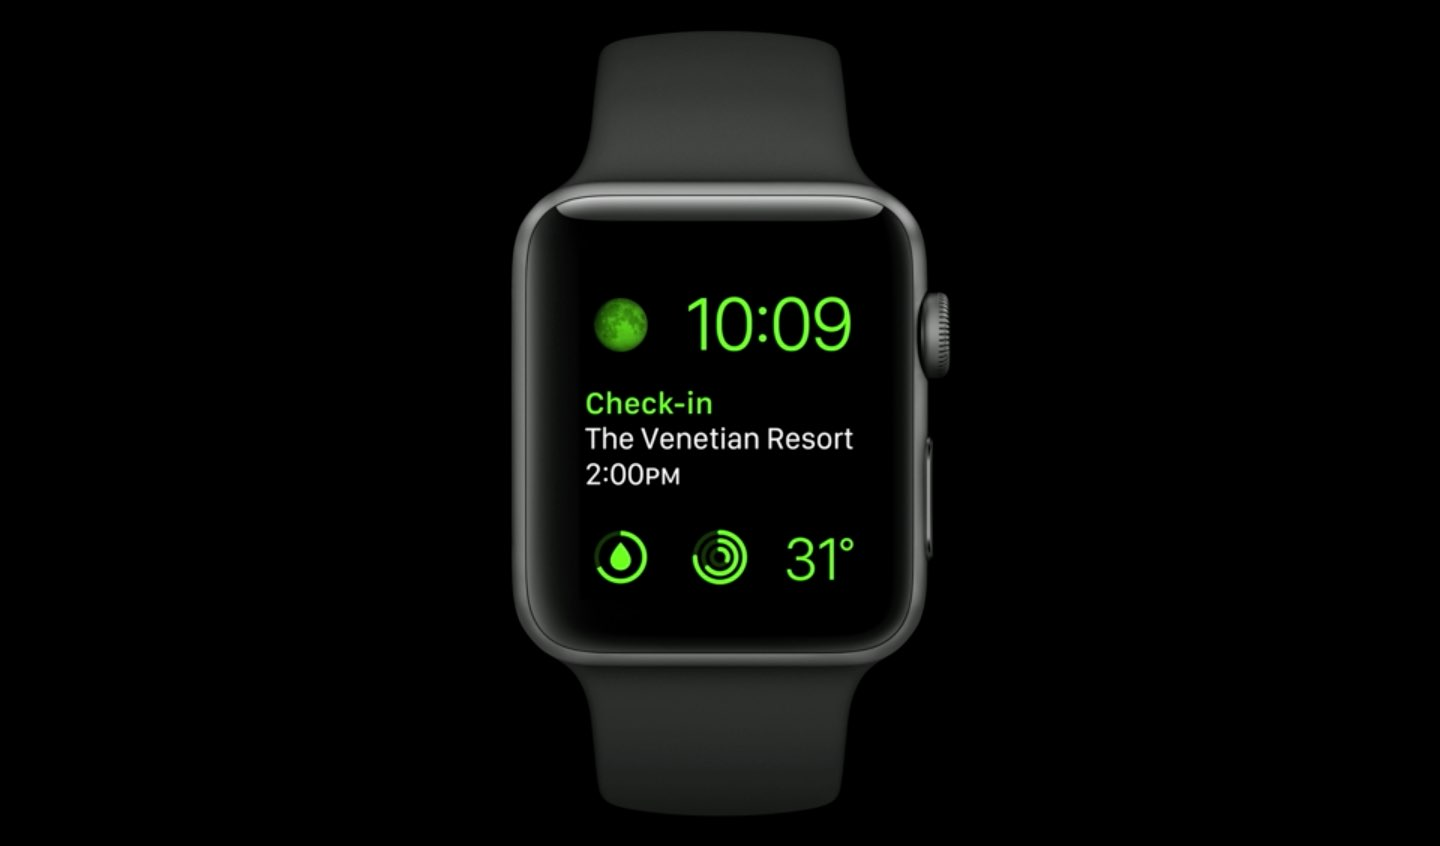 Apple Watch complications on Series 4: another example image